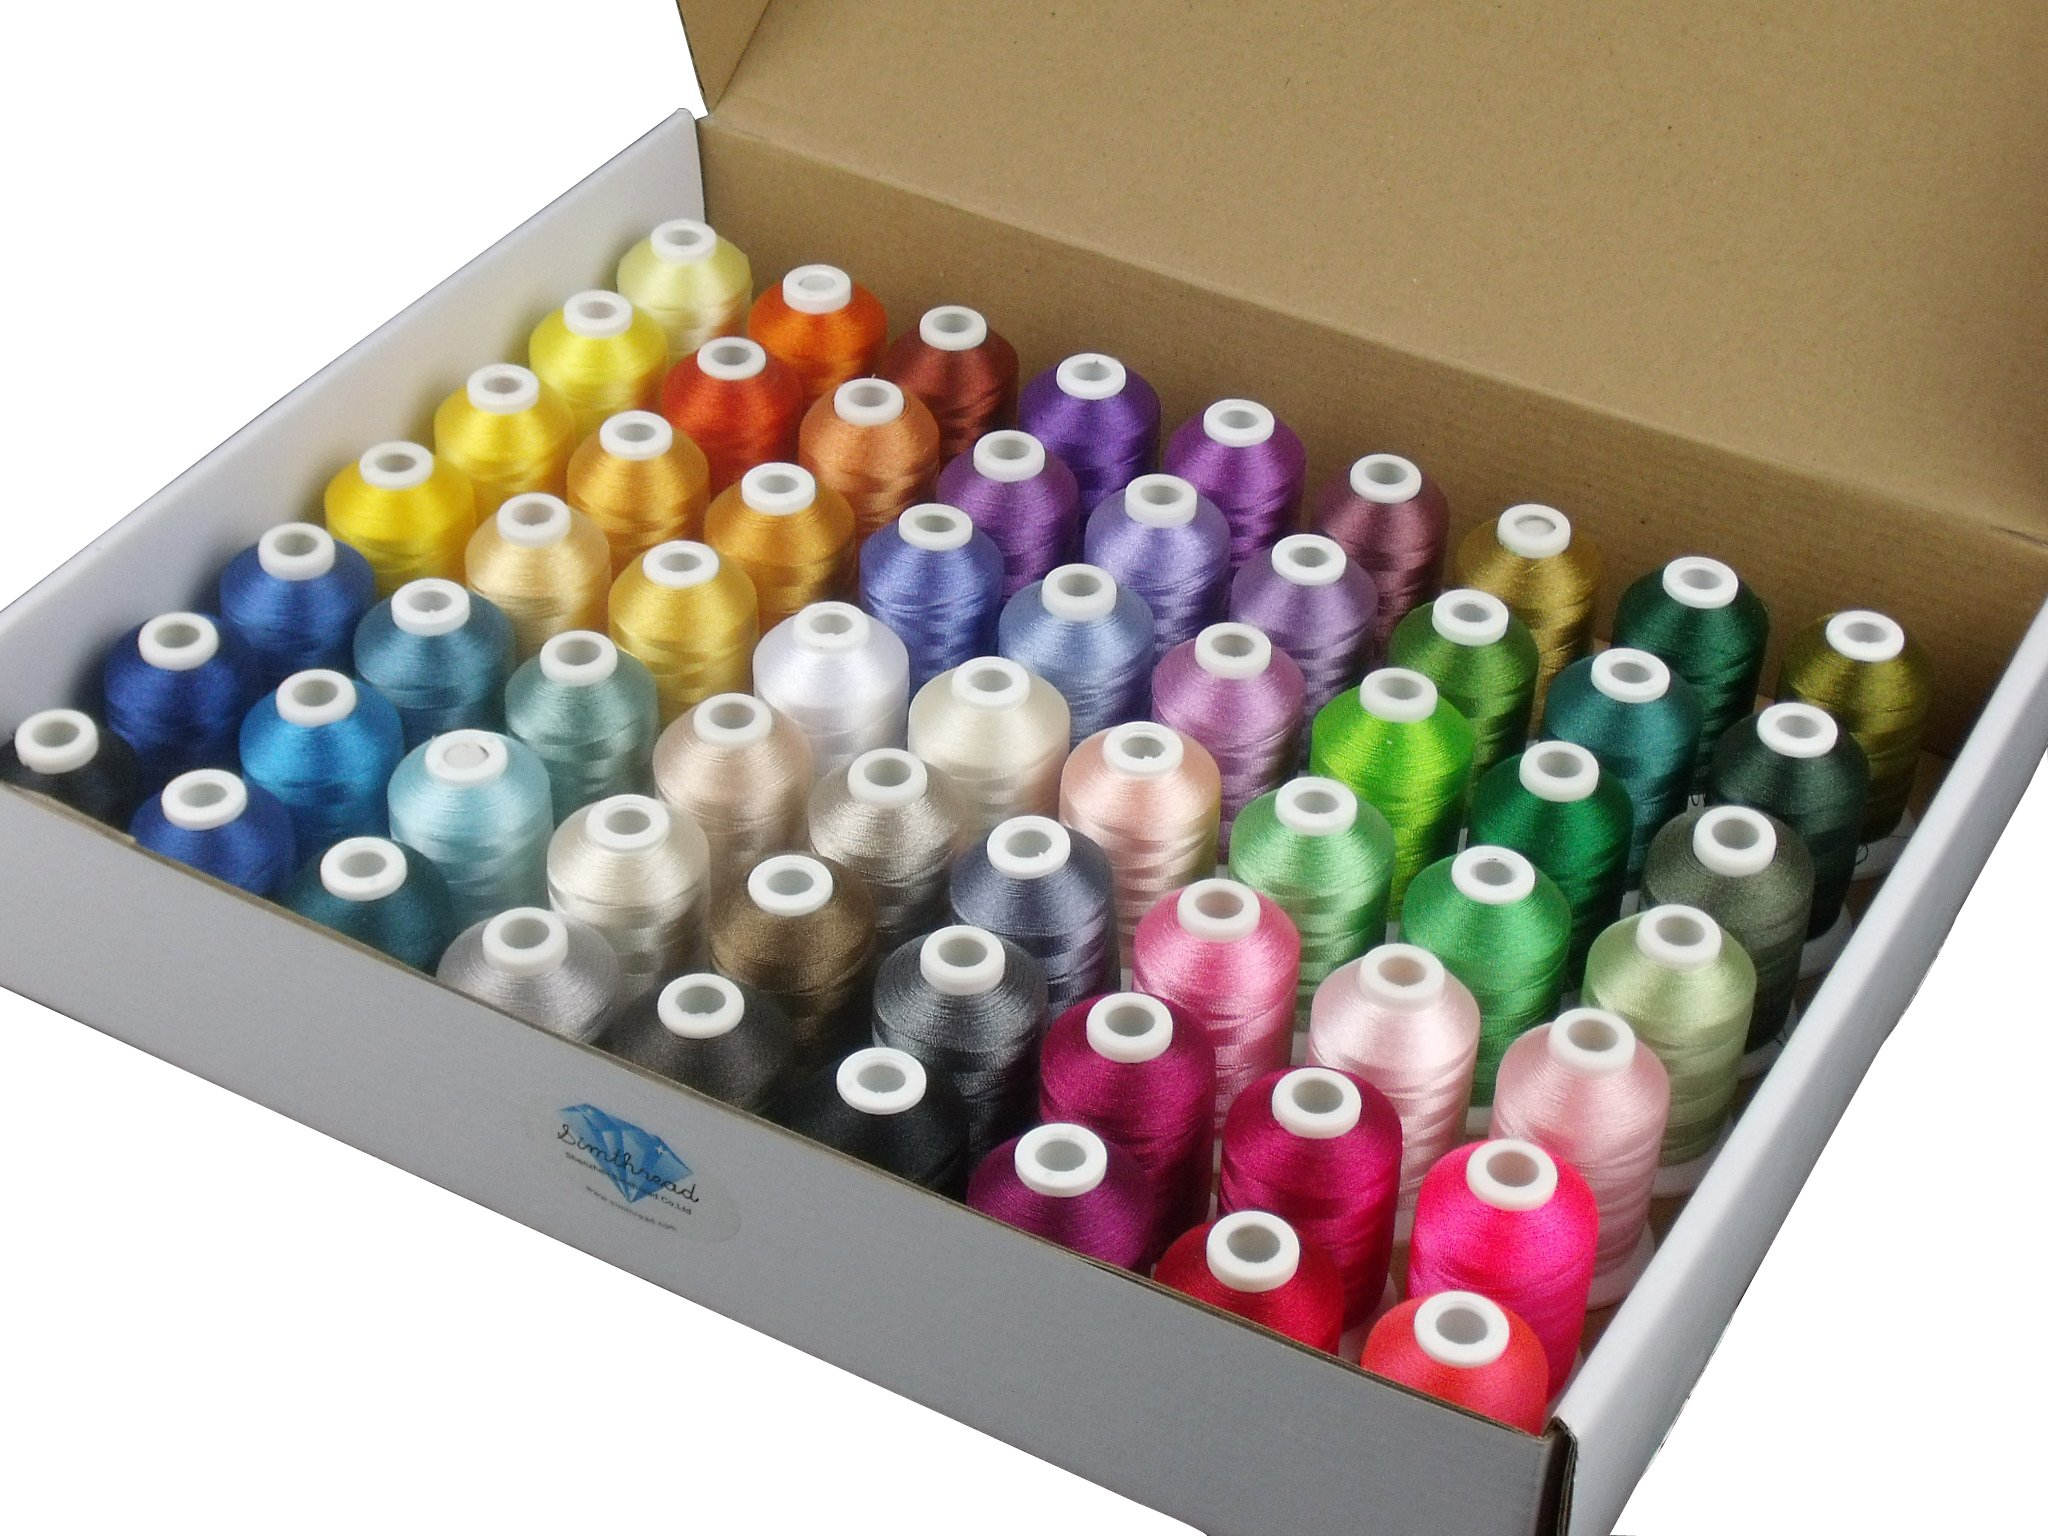 Simthread 63 Brother Colors Polyester Embroidery Machine Thread Kit 40 Weight for Brother Babylock Janome Singer Pfaff Husqvarna Bernina Embroidery and Sewing Machines 550Y by Simthread